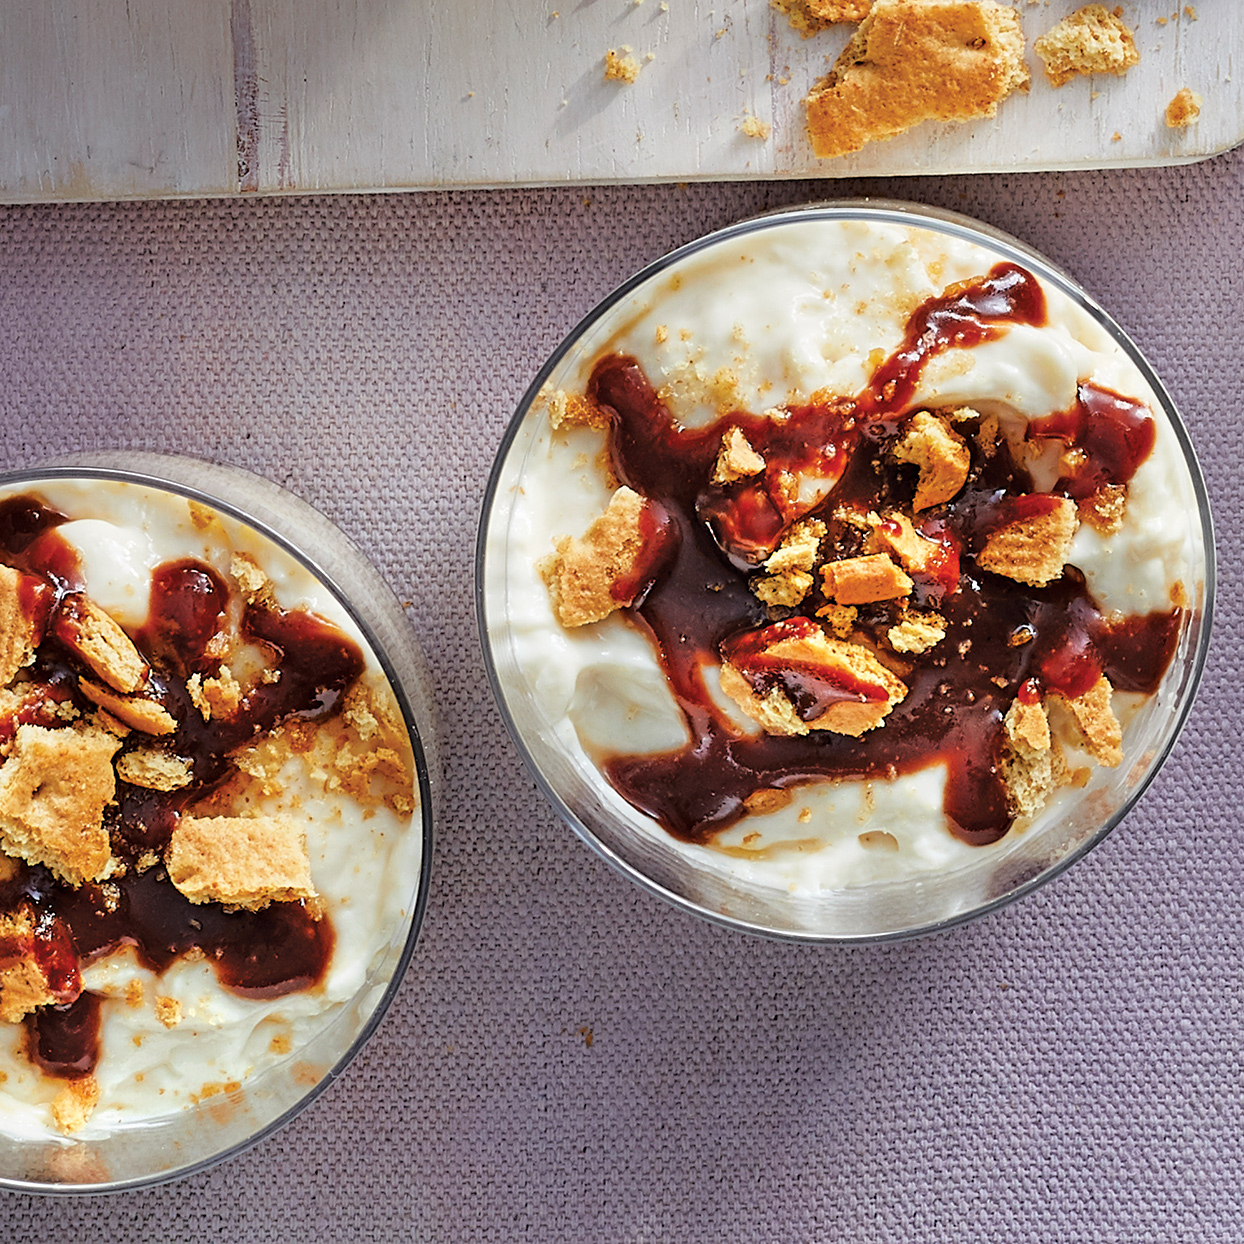 S'more Parfaits Trusted Brands